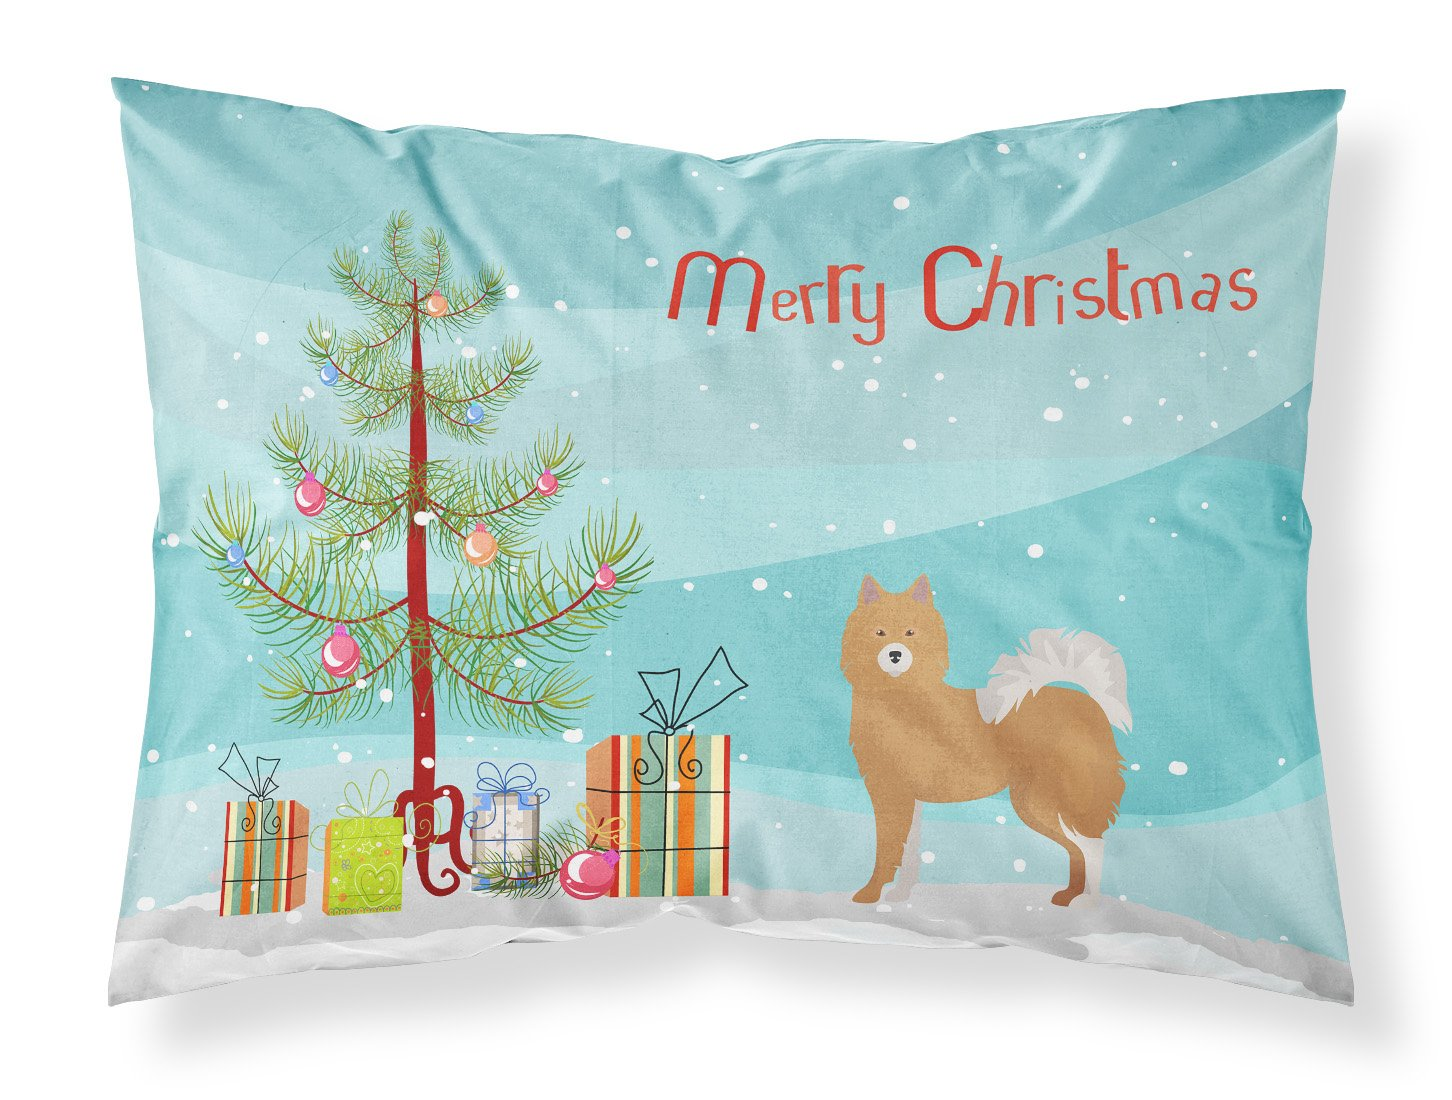 Brown & White Elo dog Christmas Tree Fabric Standard Pillowcase CK3451PILLOWCASE by Caroline's Treasures